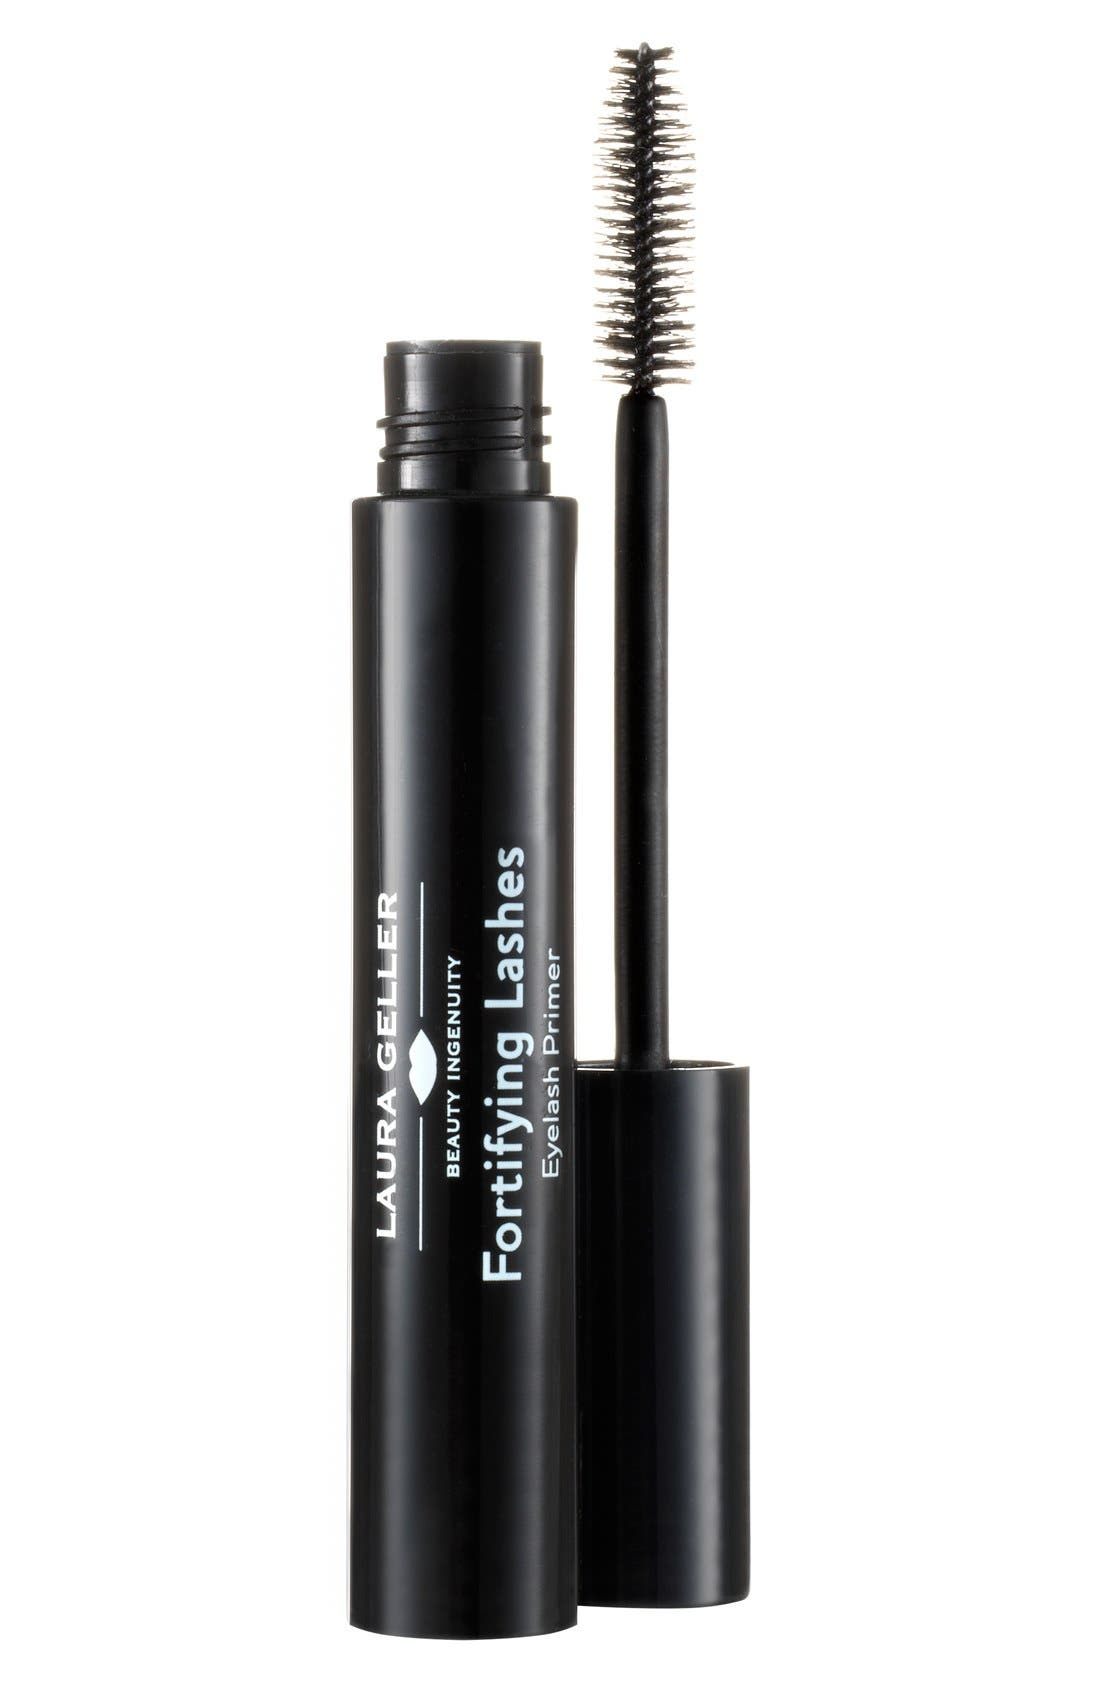 Laura Geller Beauty 'Fortifying Lashes' Lash Primer